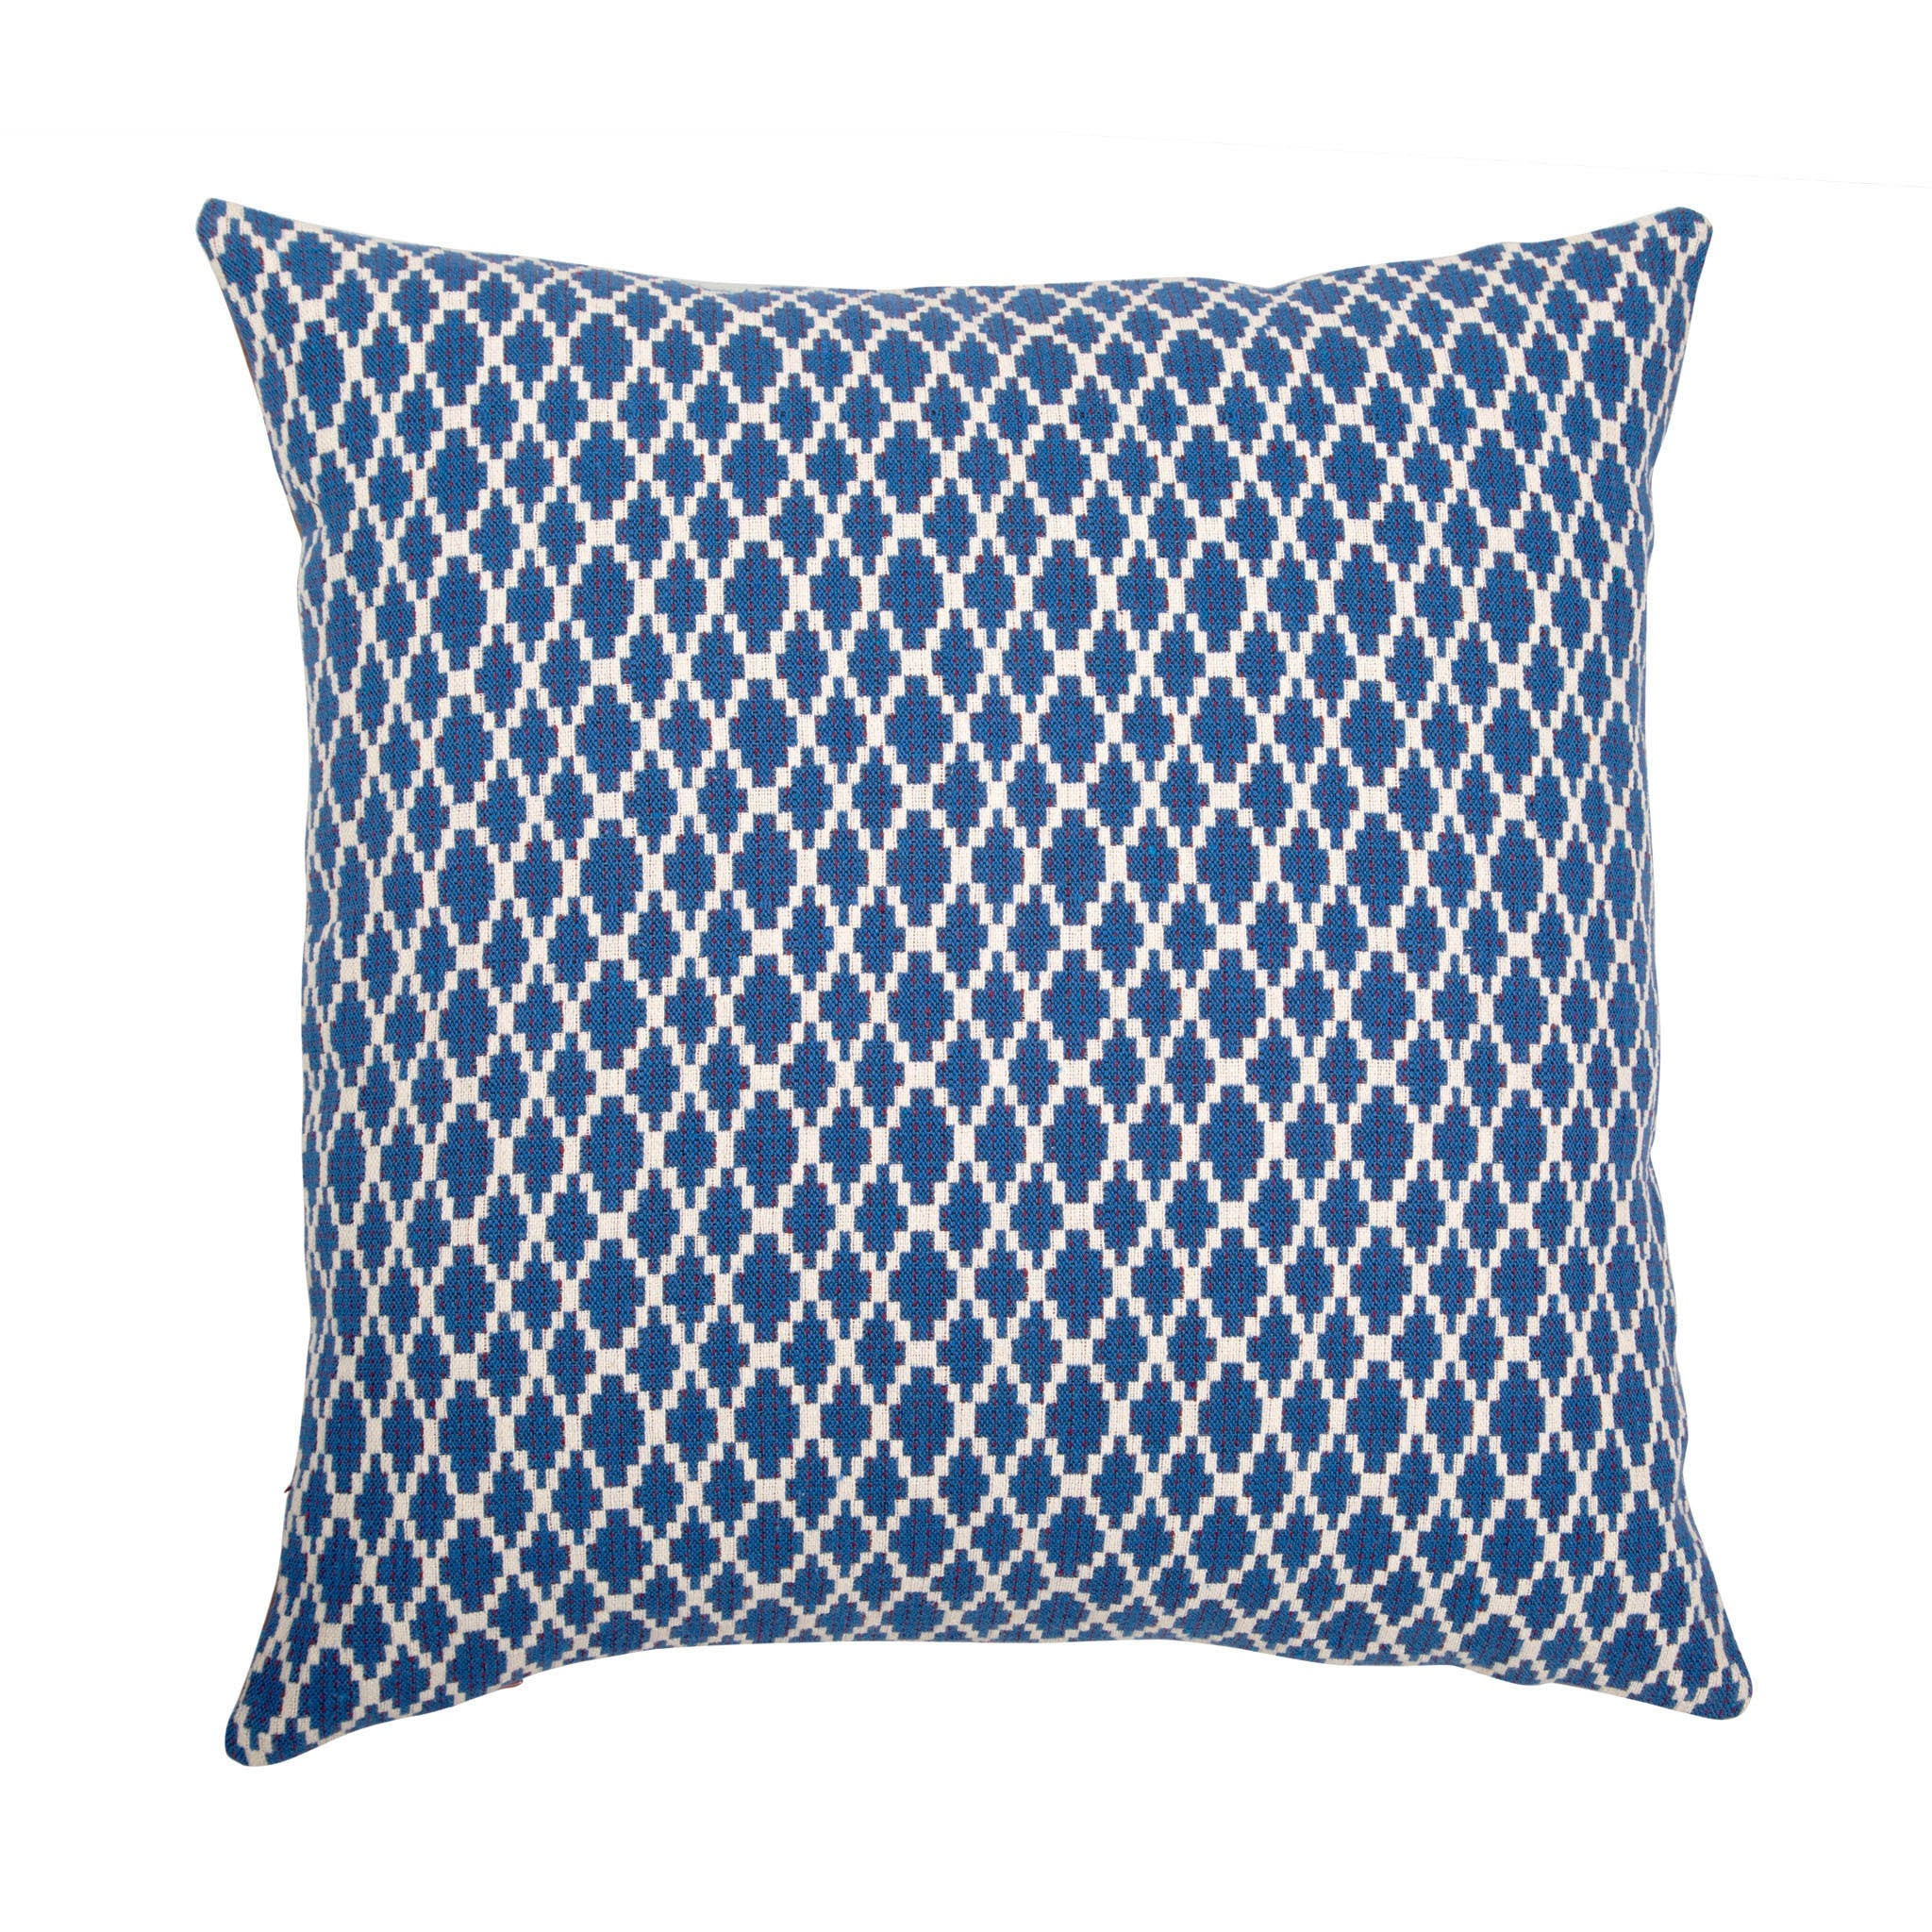 Leather cushion with blue and white cotton Jacquard back - Bivain - 2